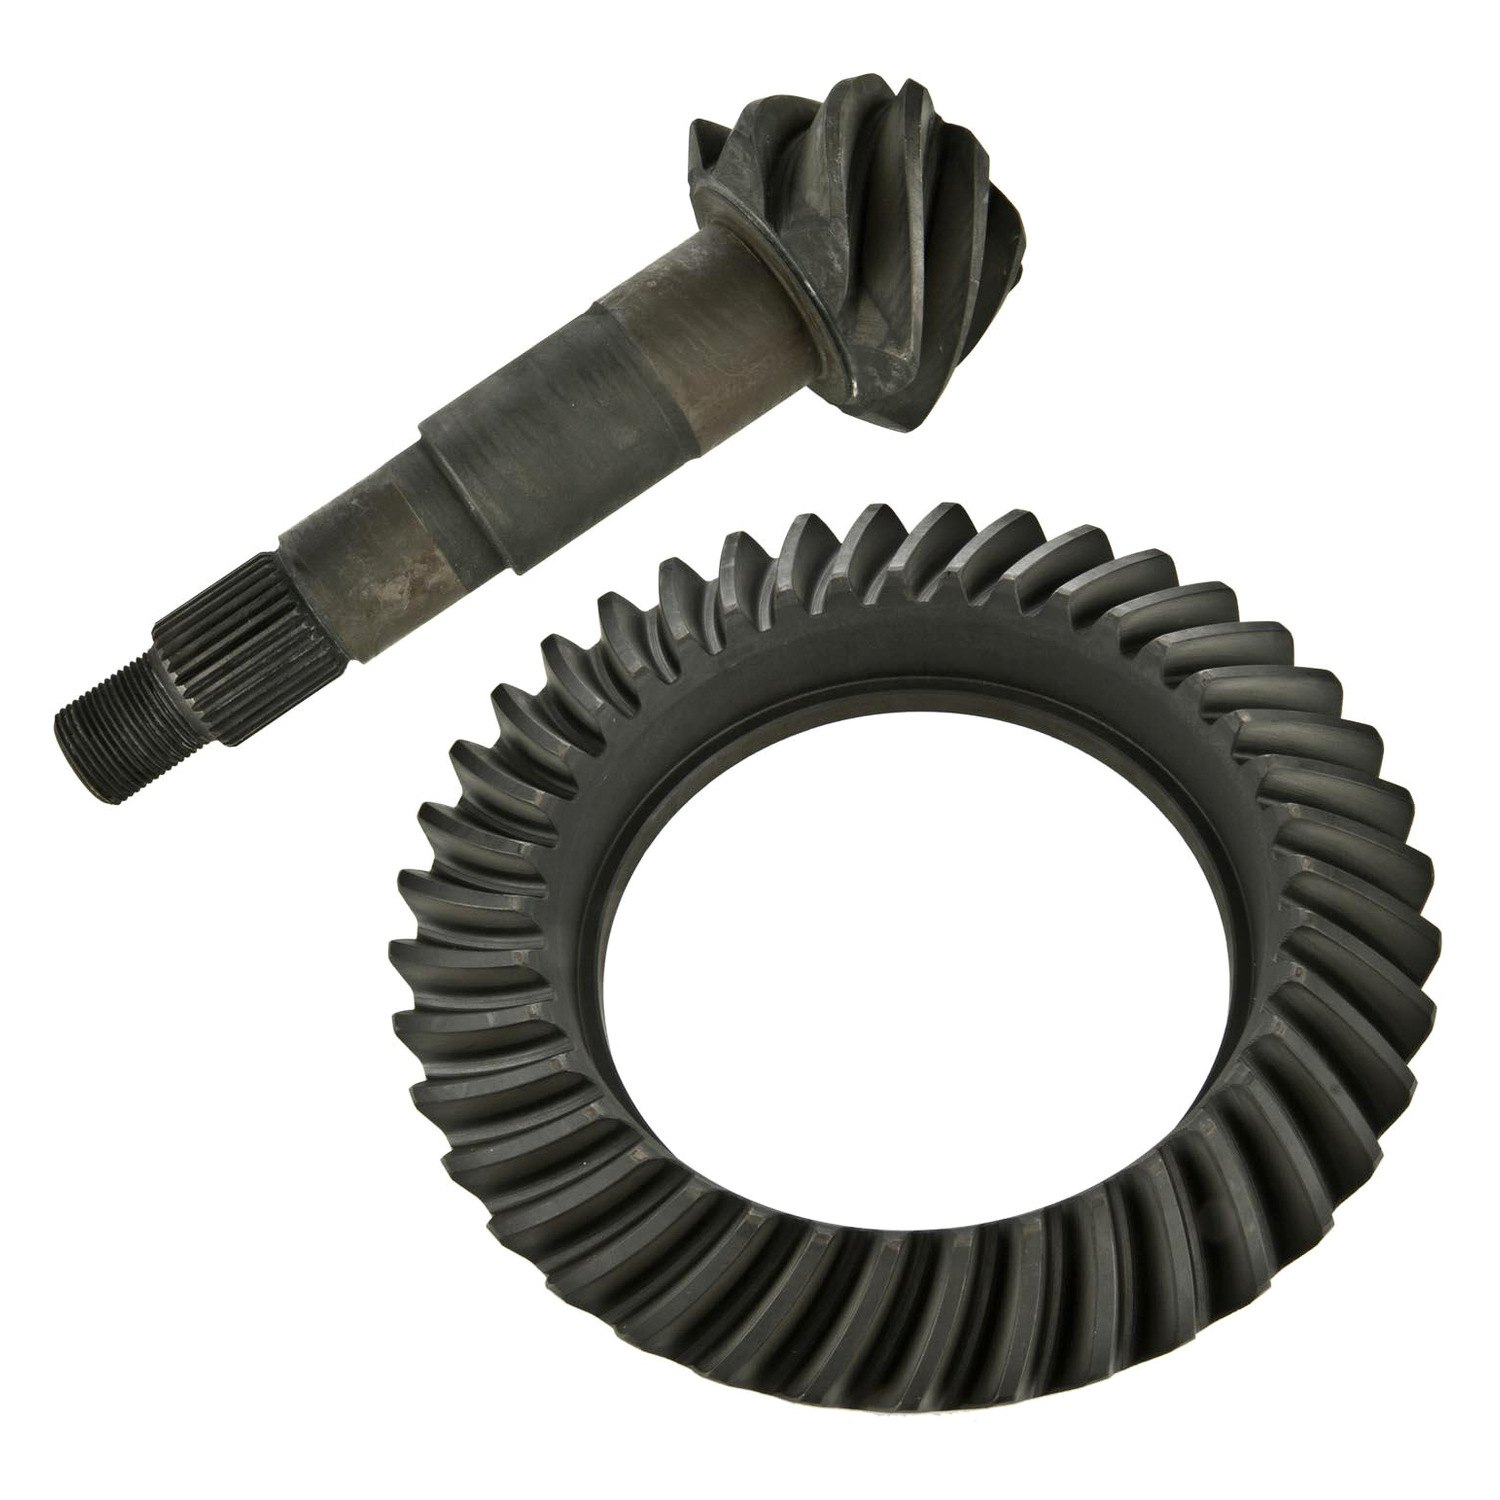 motive gear gm11 5 488 differential ring and pinion set